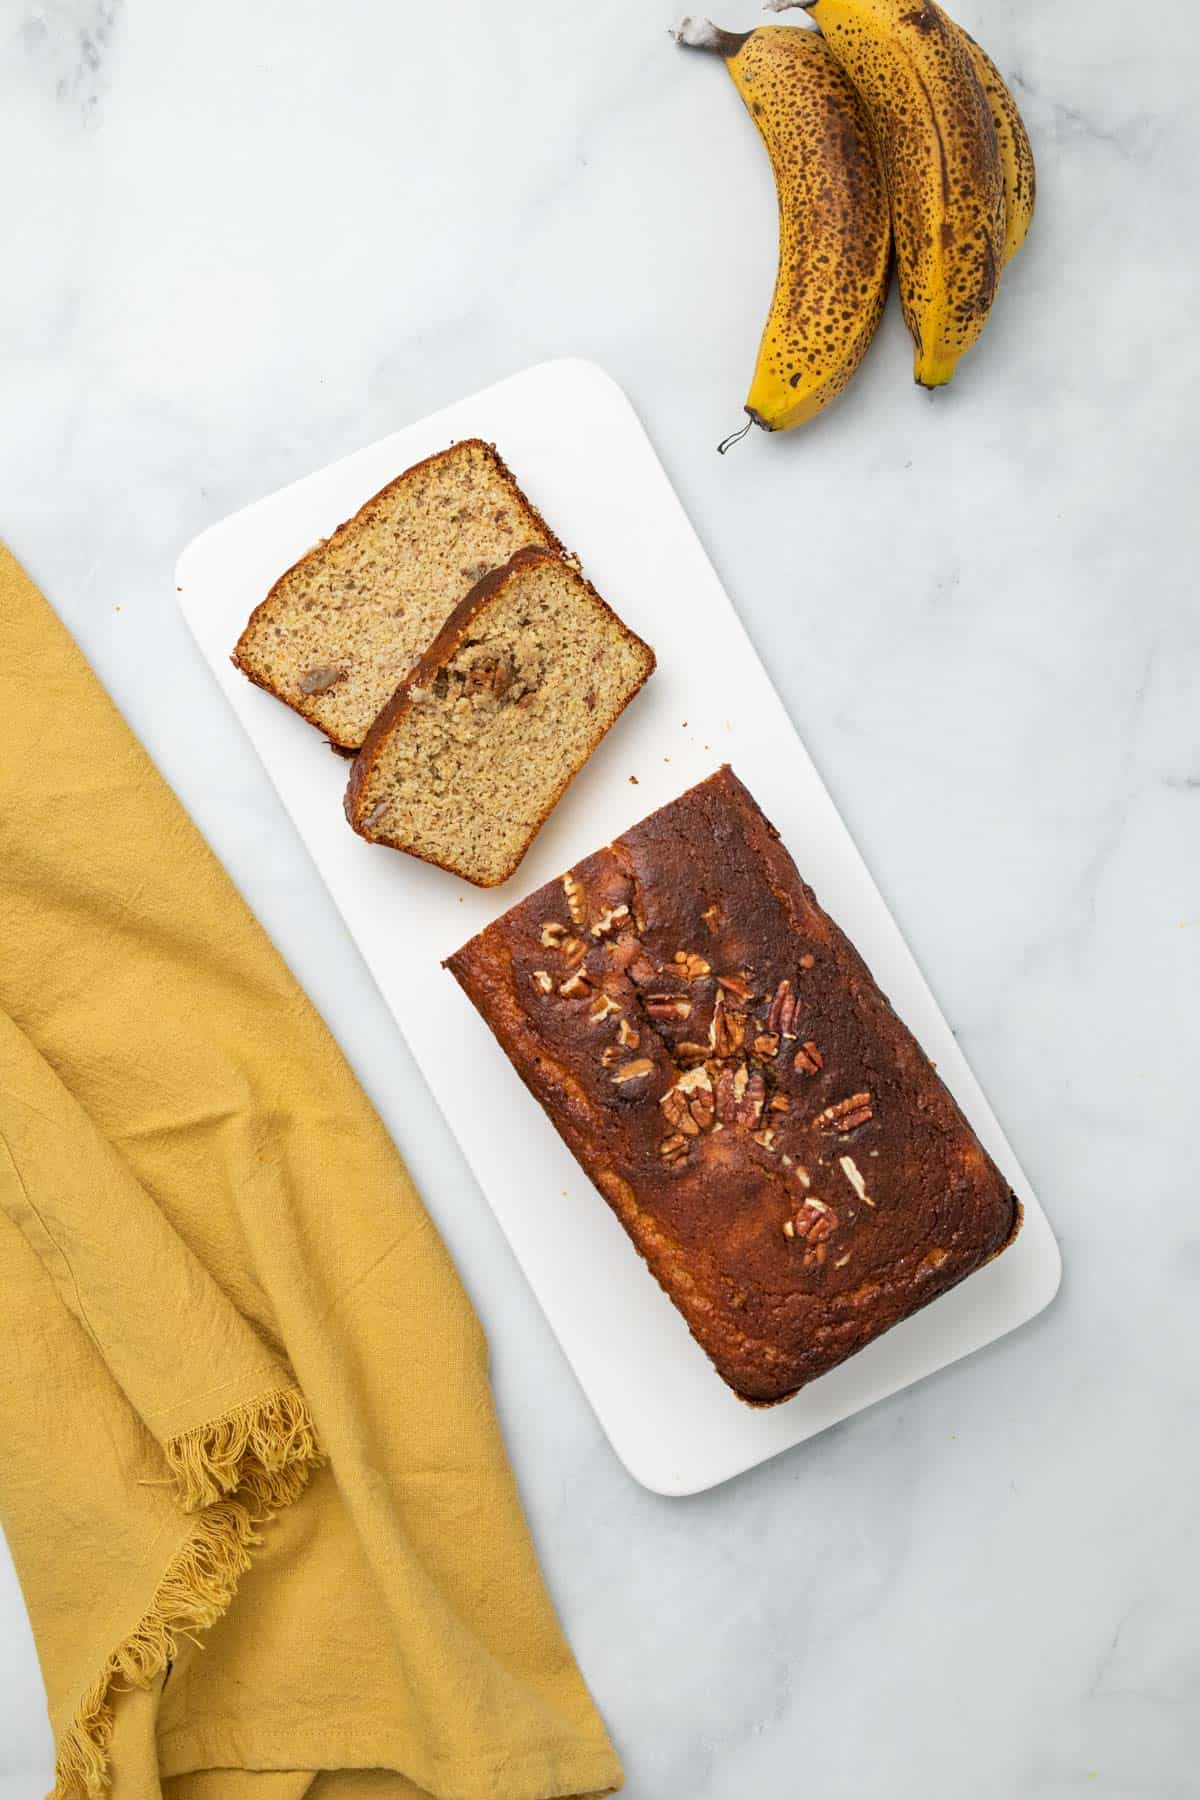 Low-carb banana bread loaf with two slices cut